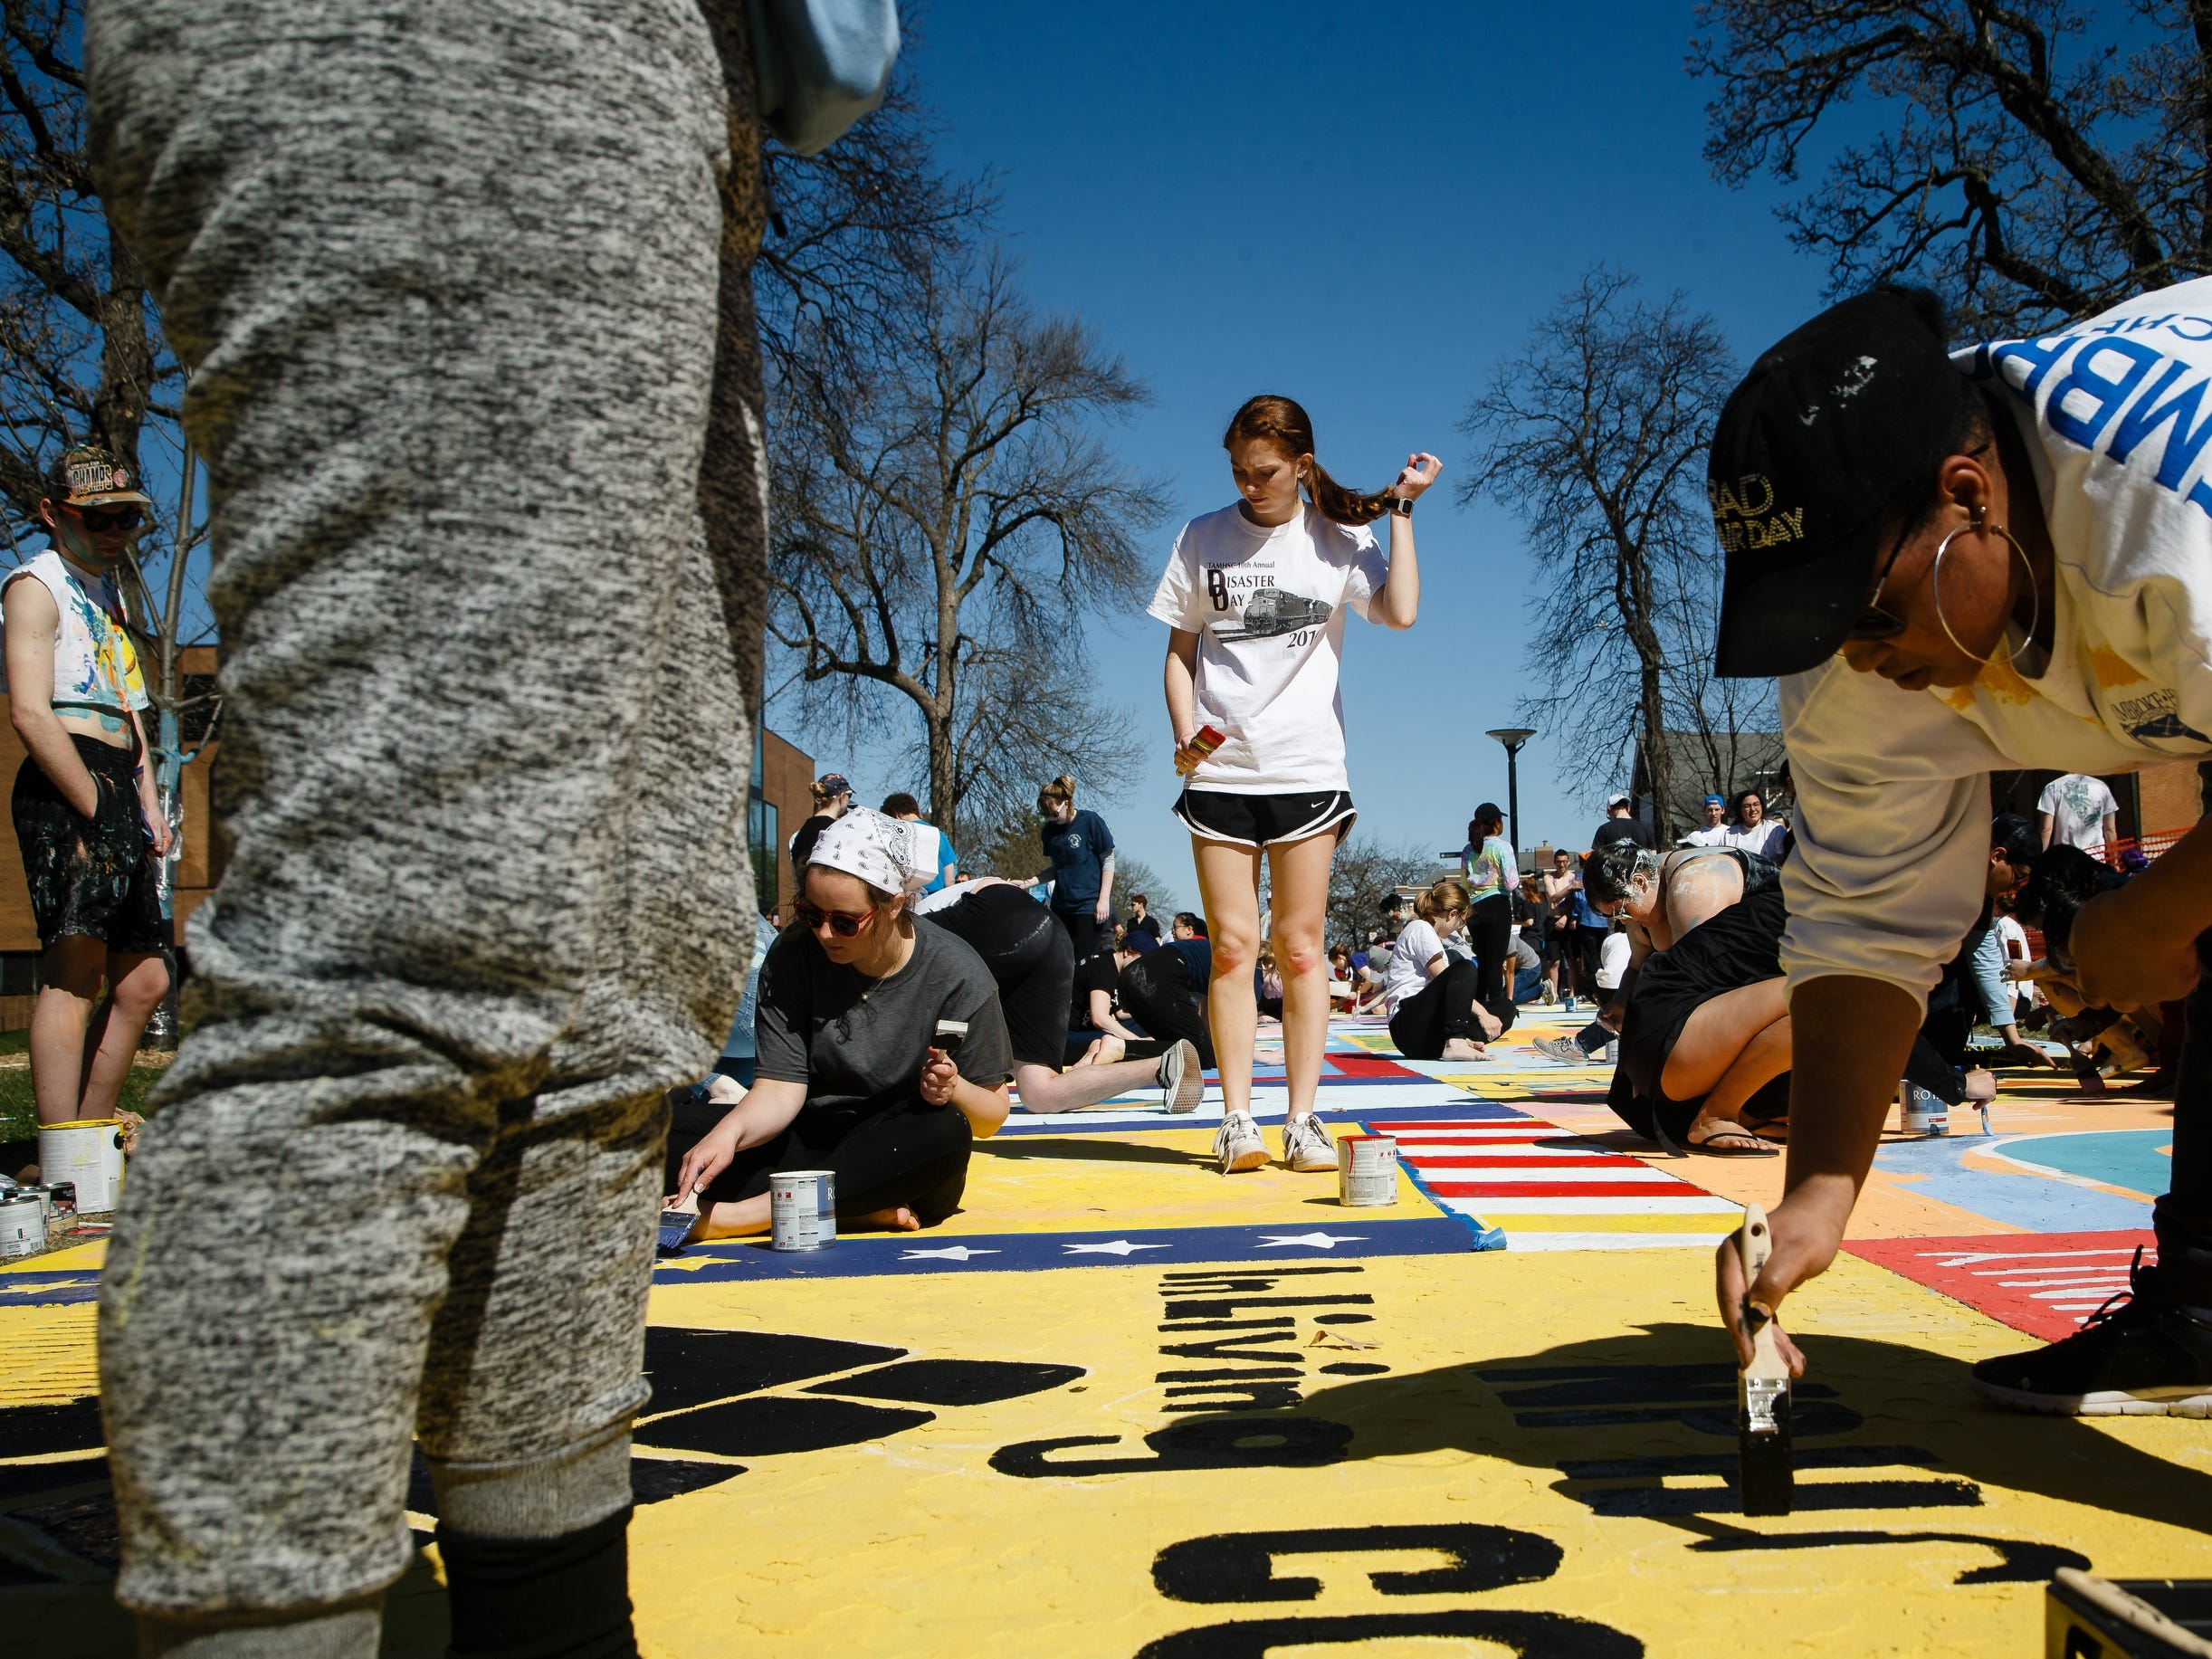 Rebecca Curry, 20 of College Station, Tex., center, joins students at Drake University painting Painted Street on Friday in Des Moines.